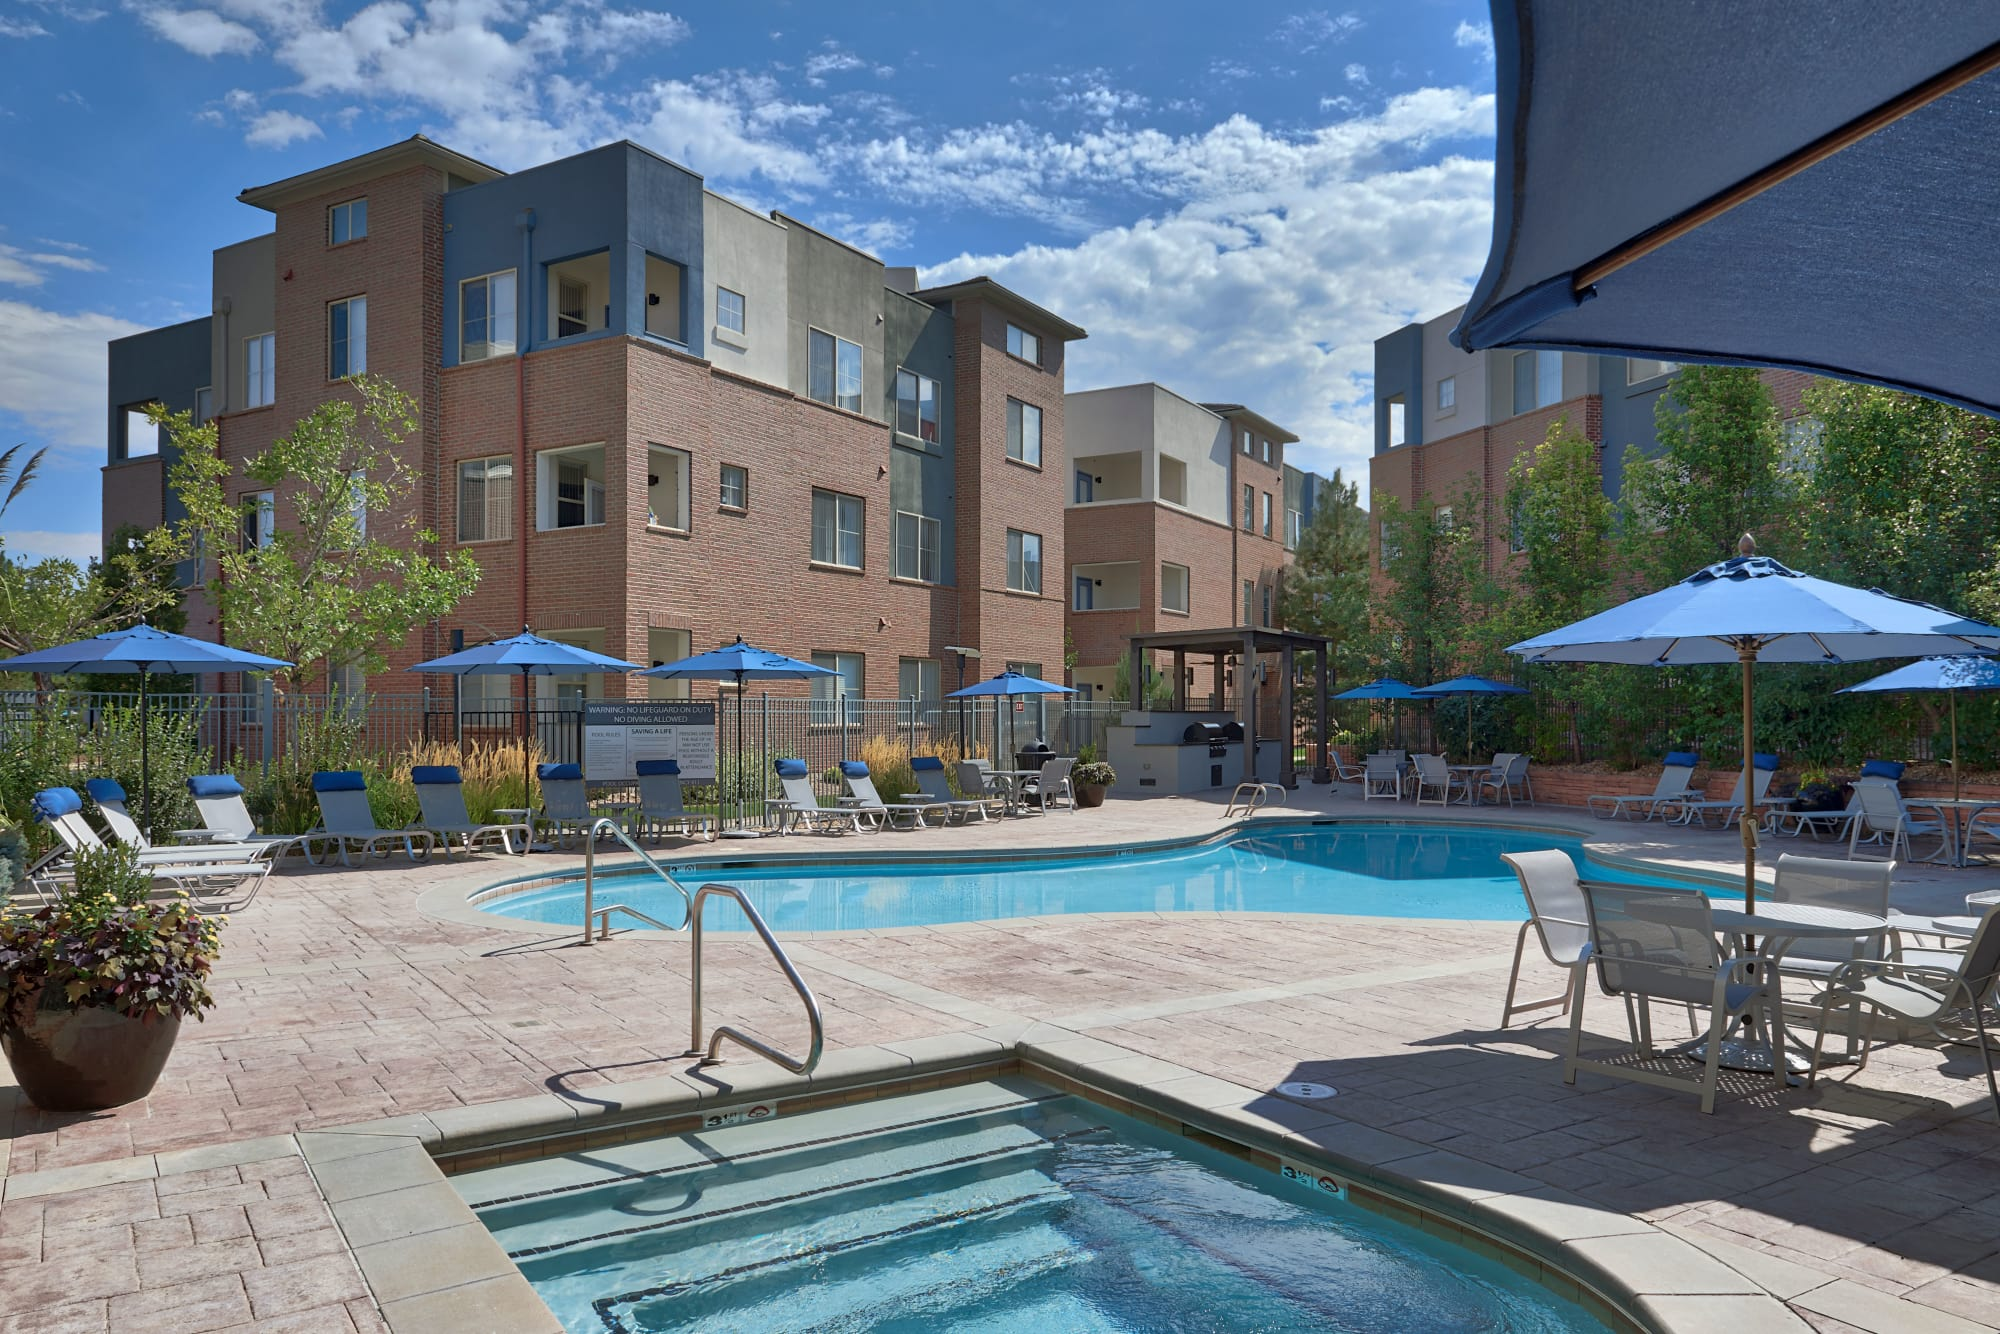 A swimming pool that is great for entertaining at The Rail at Inverness in Englewood, CO